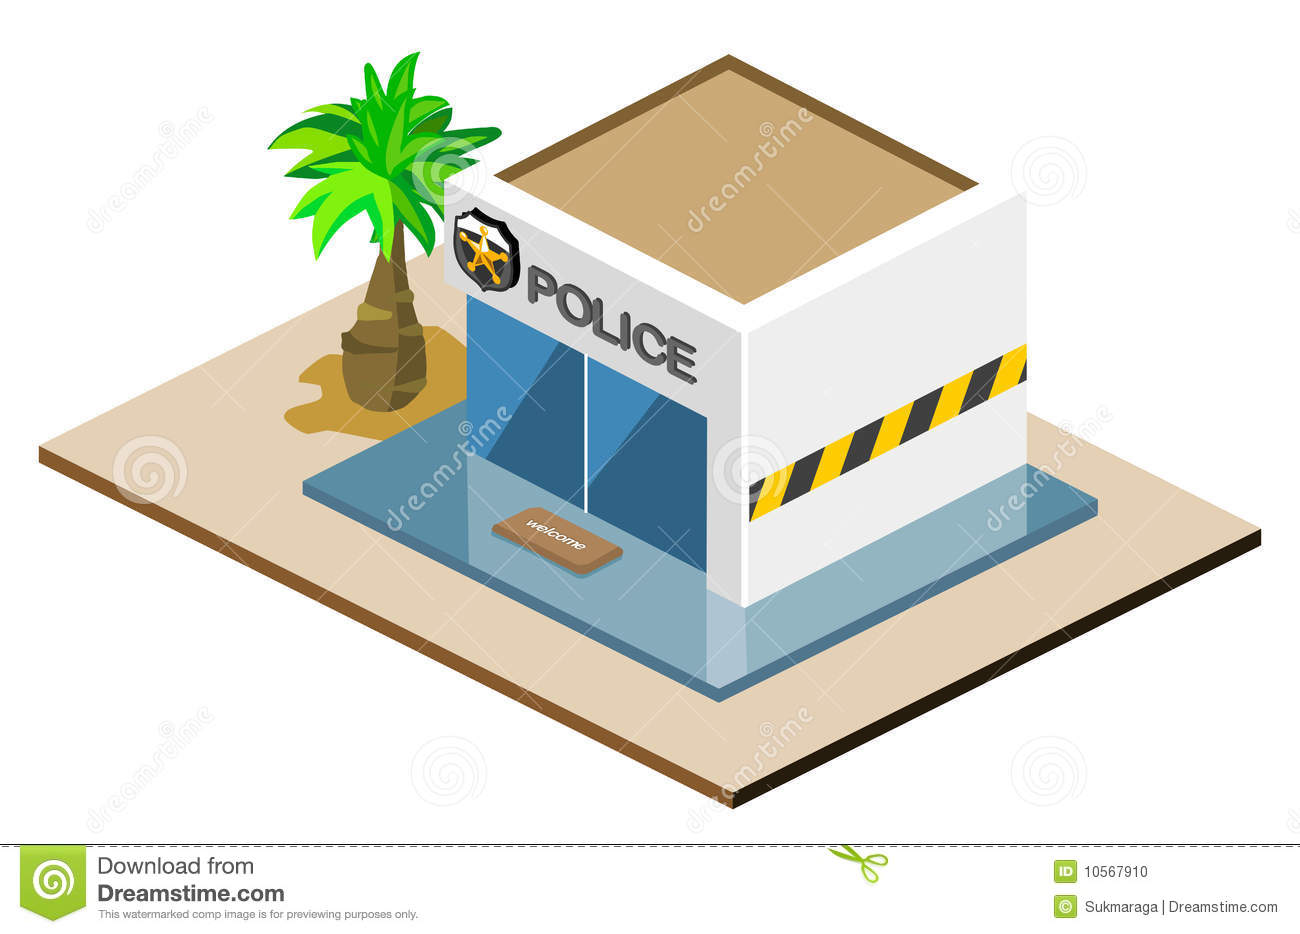 Police clipart police station Free Station post%20office%20building%20clipart Clipart Images